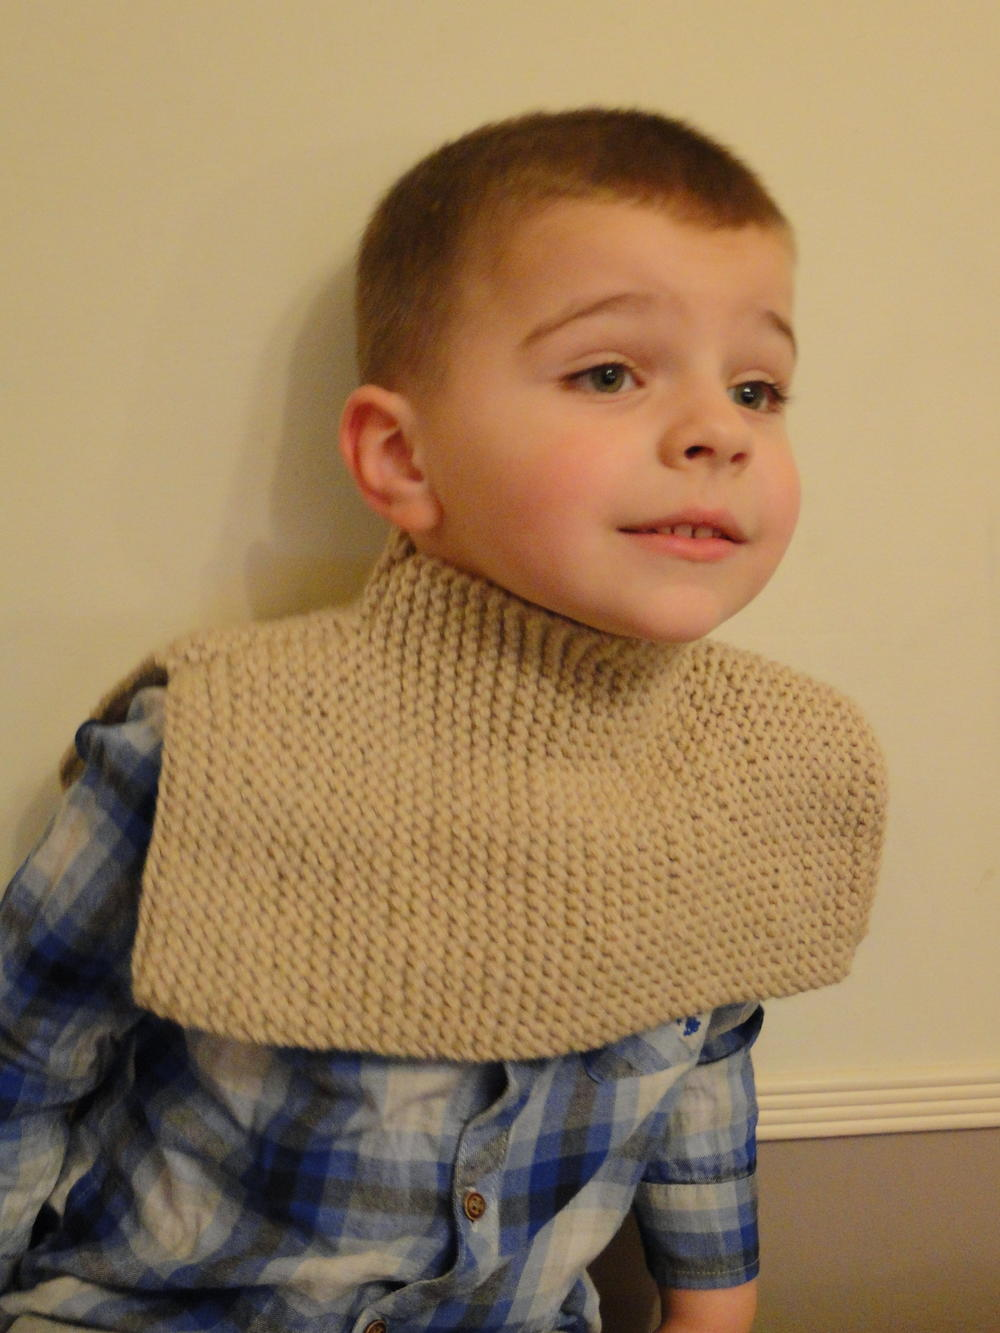 Knitting Pattern For Scarf For Toddler : Under Your Coat Knit Scarf for Kids AllFreeKnitting.com